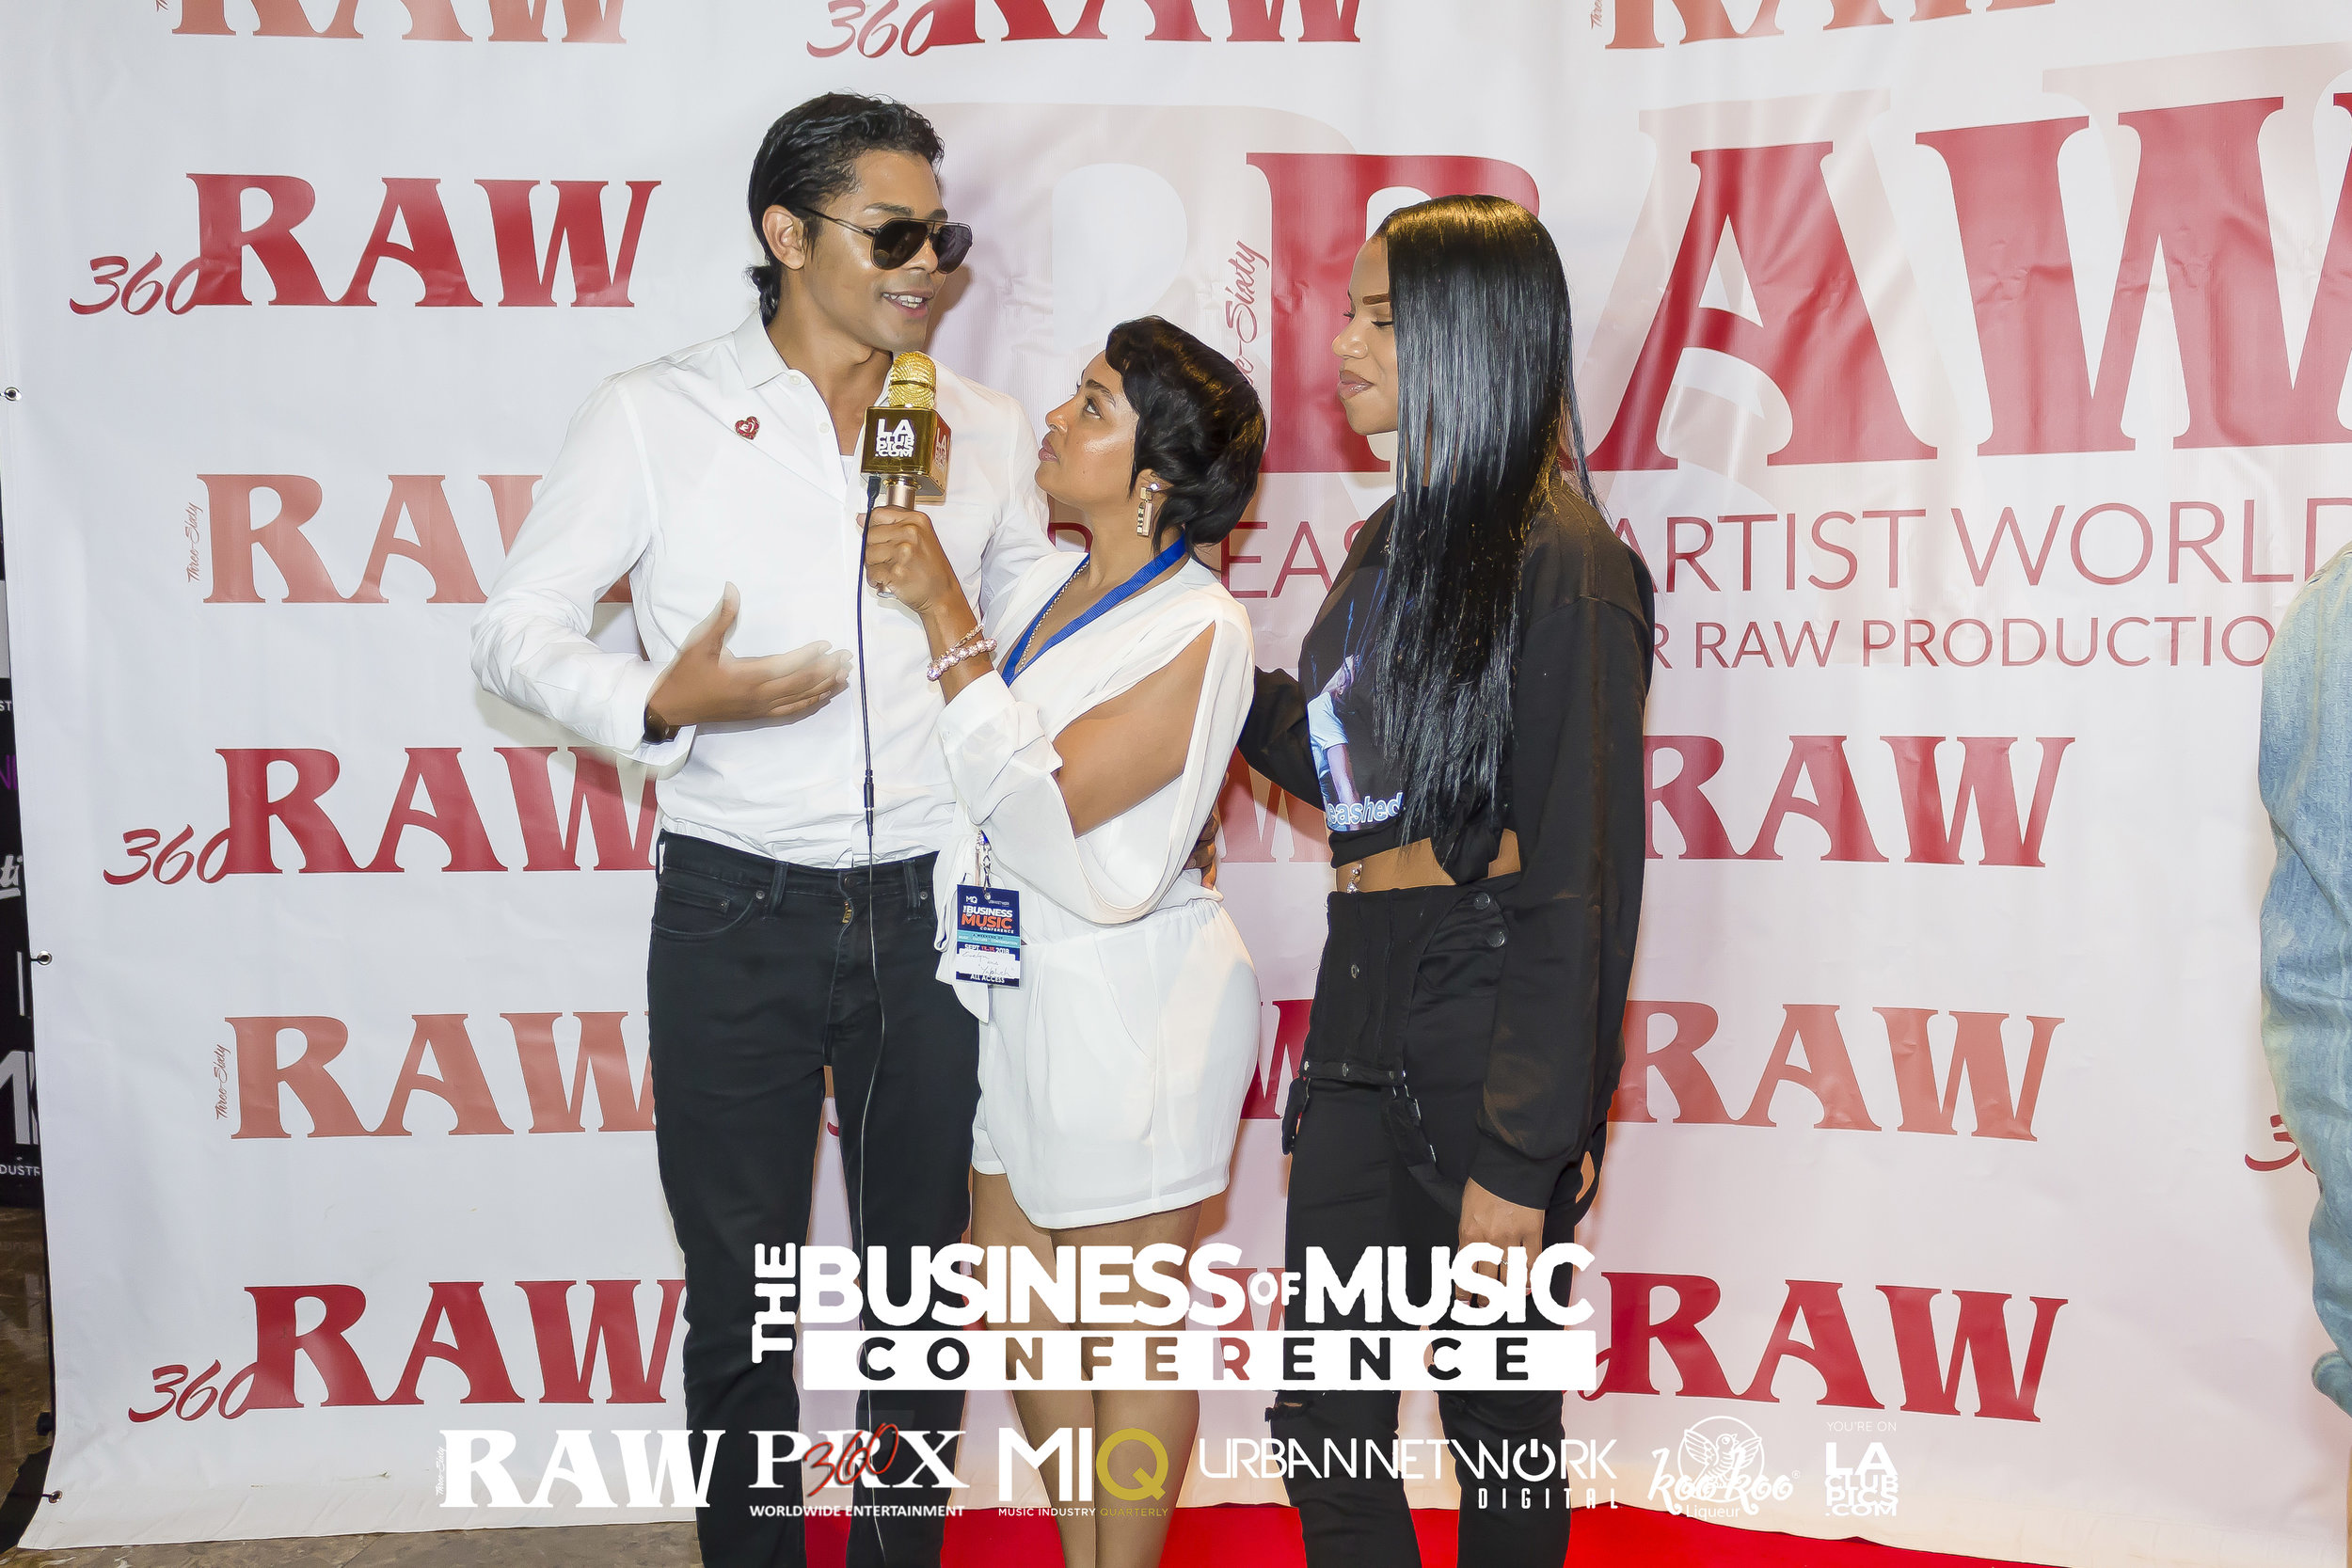 We do interviews! - Don't have a host for your red carpet? Leave the interviews to us! We have a package that includes a professional red carpet host who can interview your event's guests on your behalf. We can also re-brand our popular gold mic with your brand or even your main sponsor's logo!